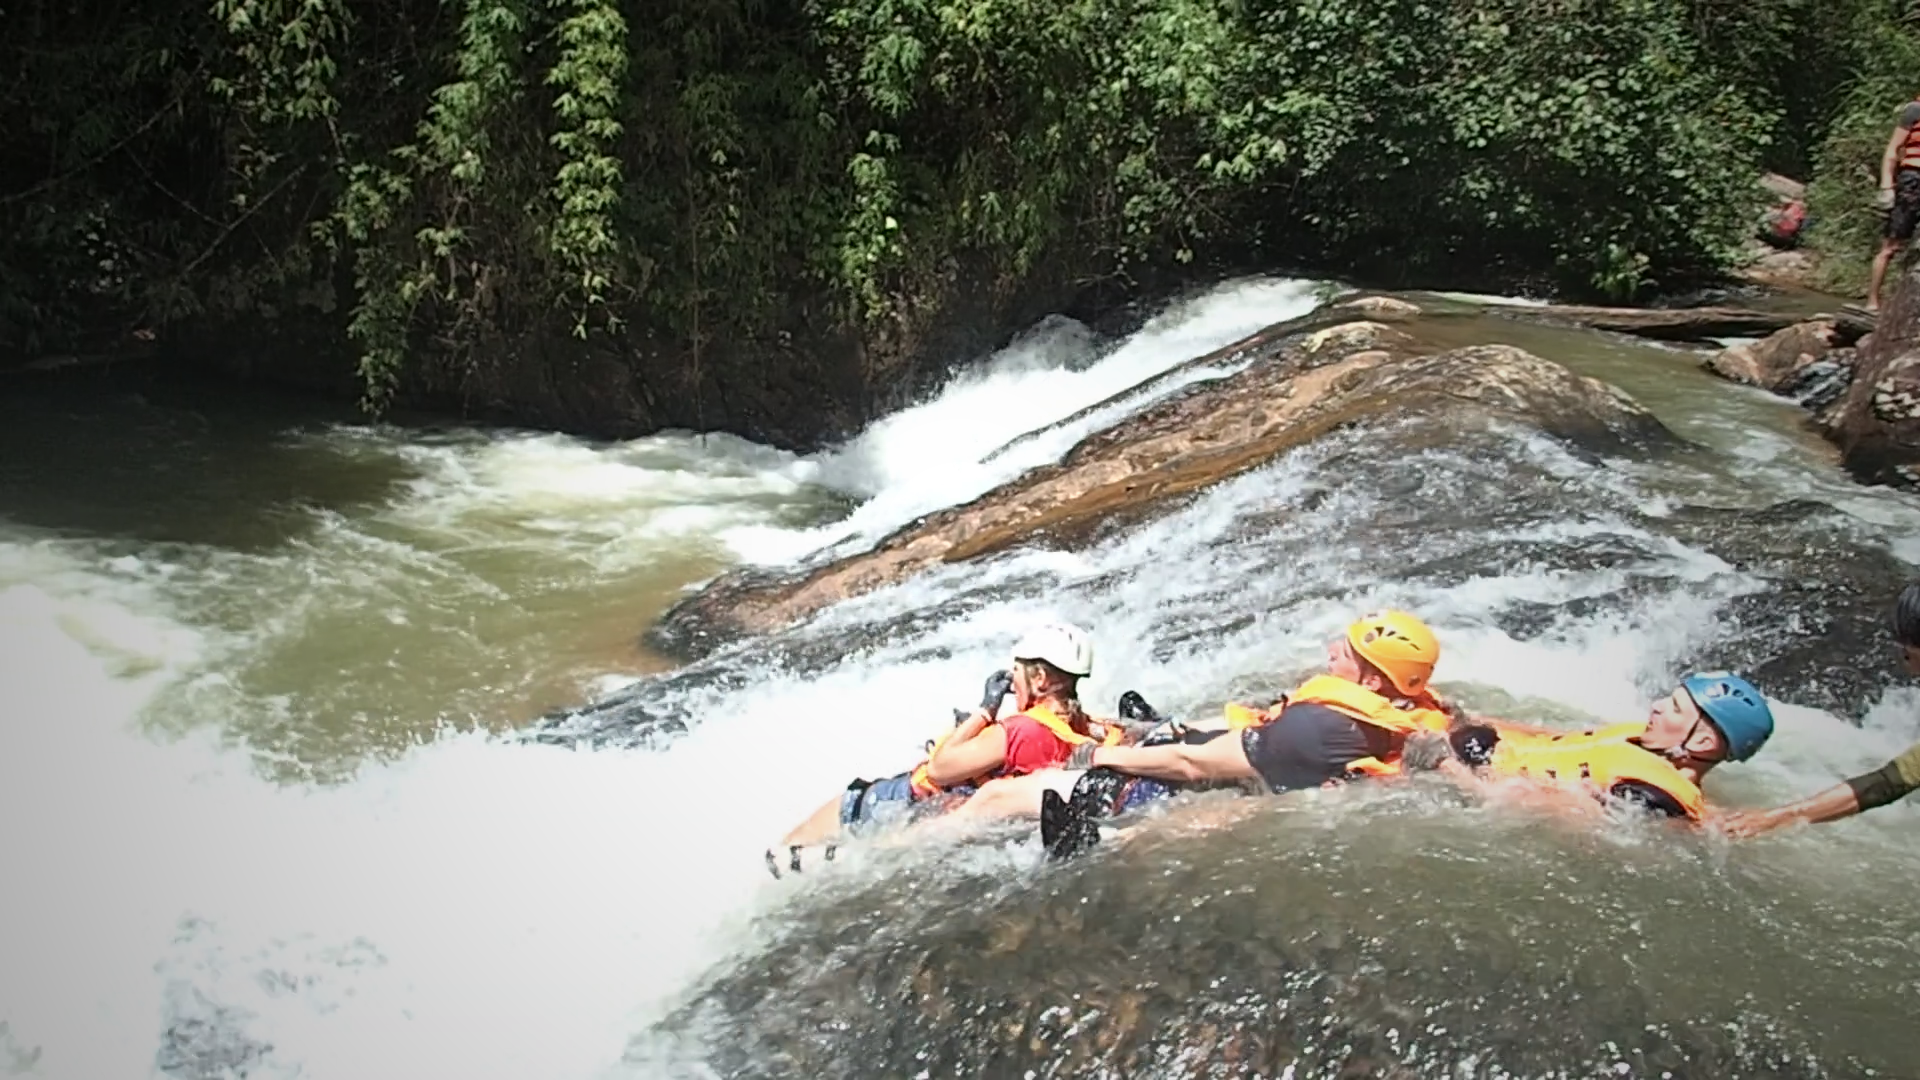 three of my fellow canyoning pals as we float over the natural water slide